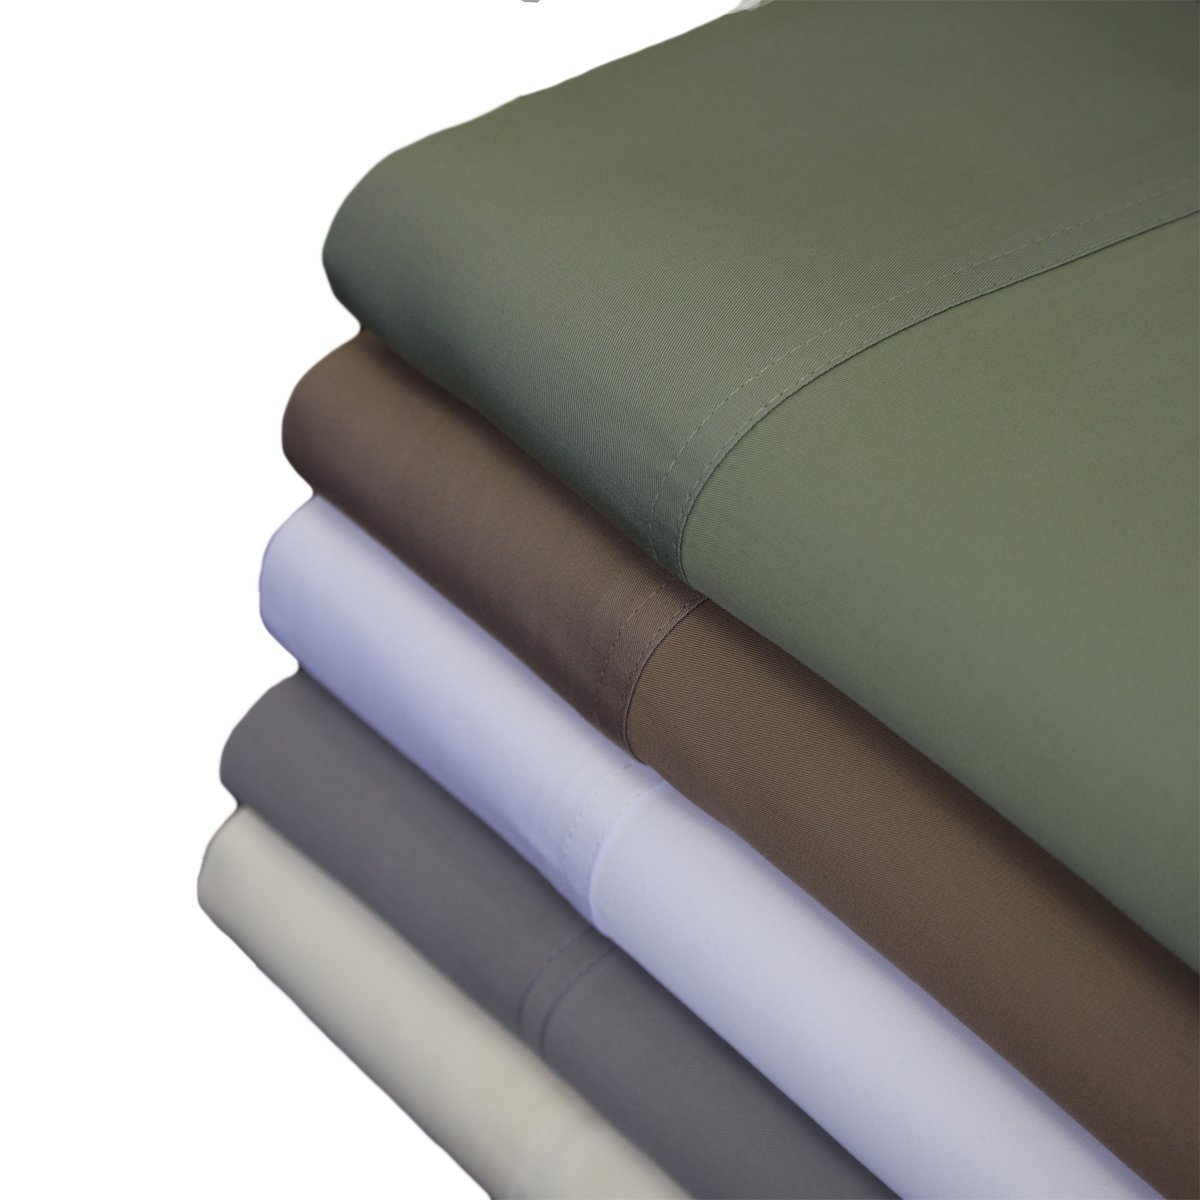 Image of Abripedic 600 thread count sheet from Bamboo viscose - Best 600 Thread Count Sheets